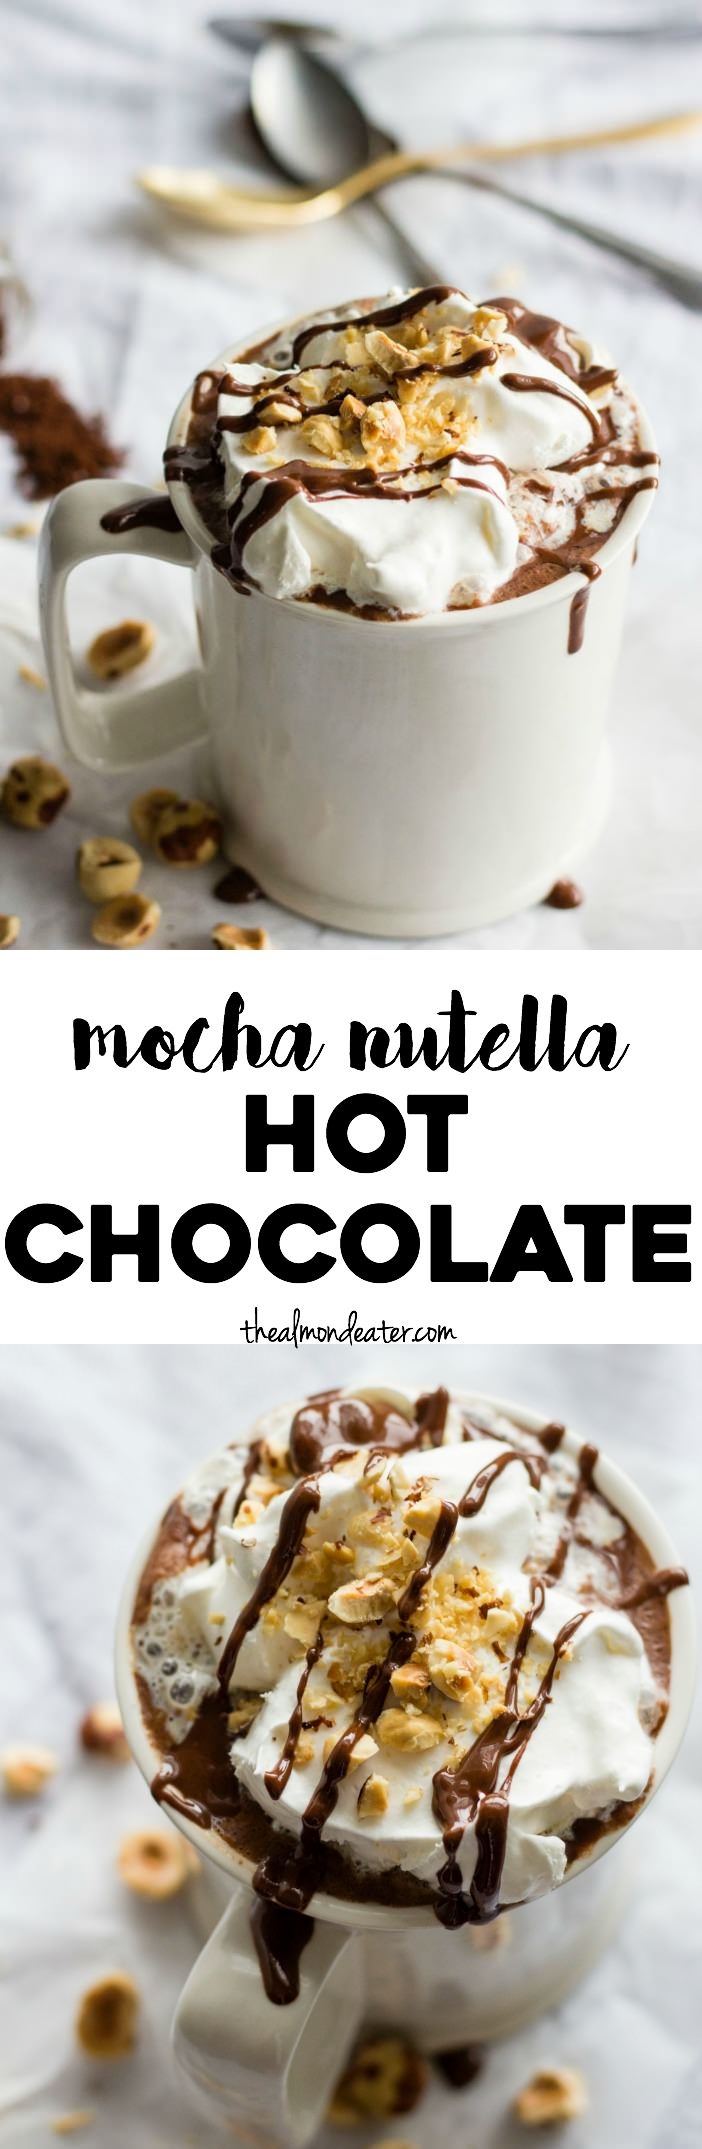 Mocha Nutella Hot Chocolate | The Almond Eater